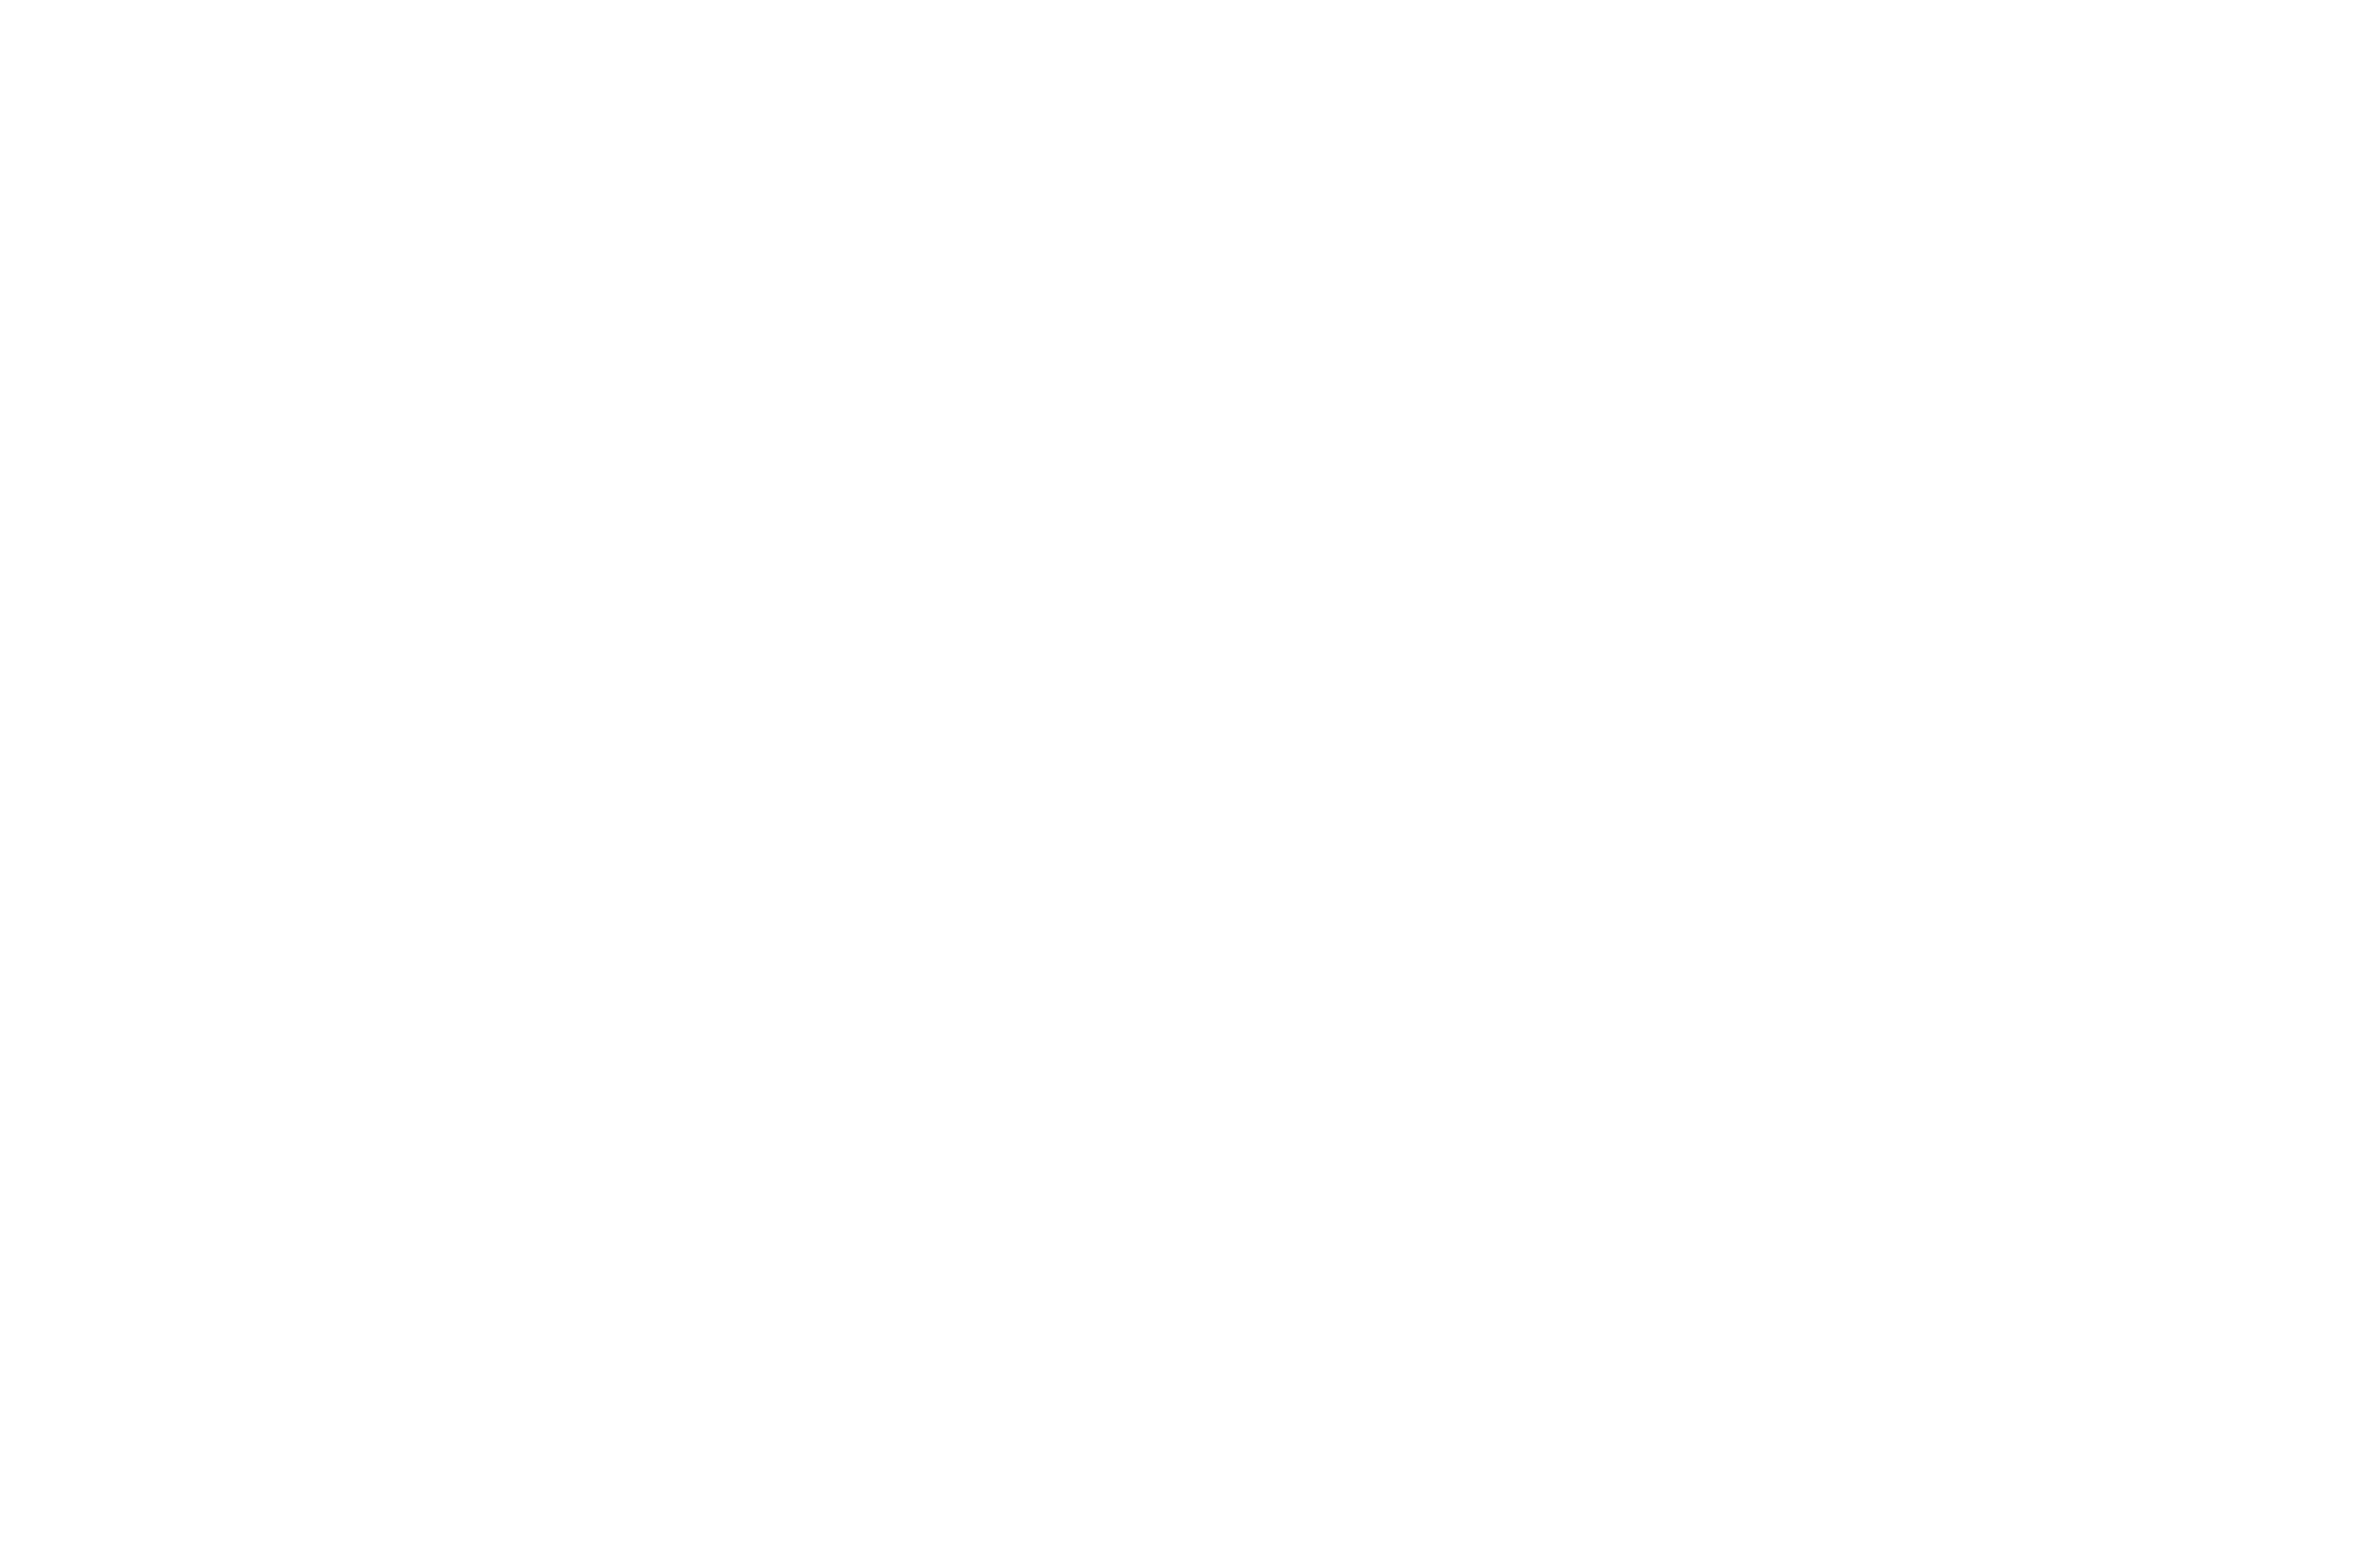 djoniba dance and drum kids